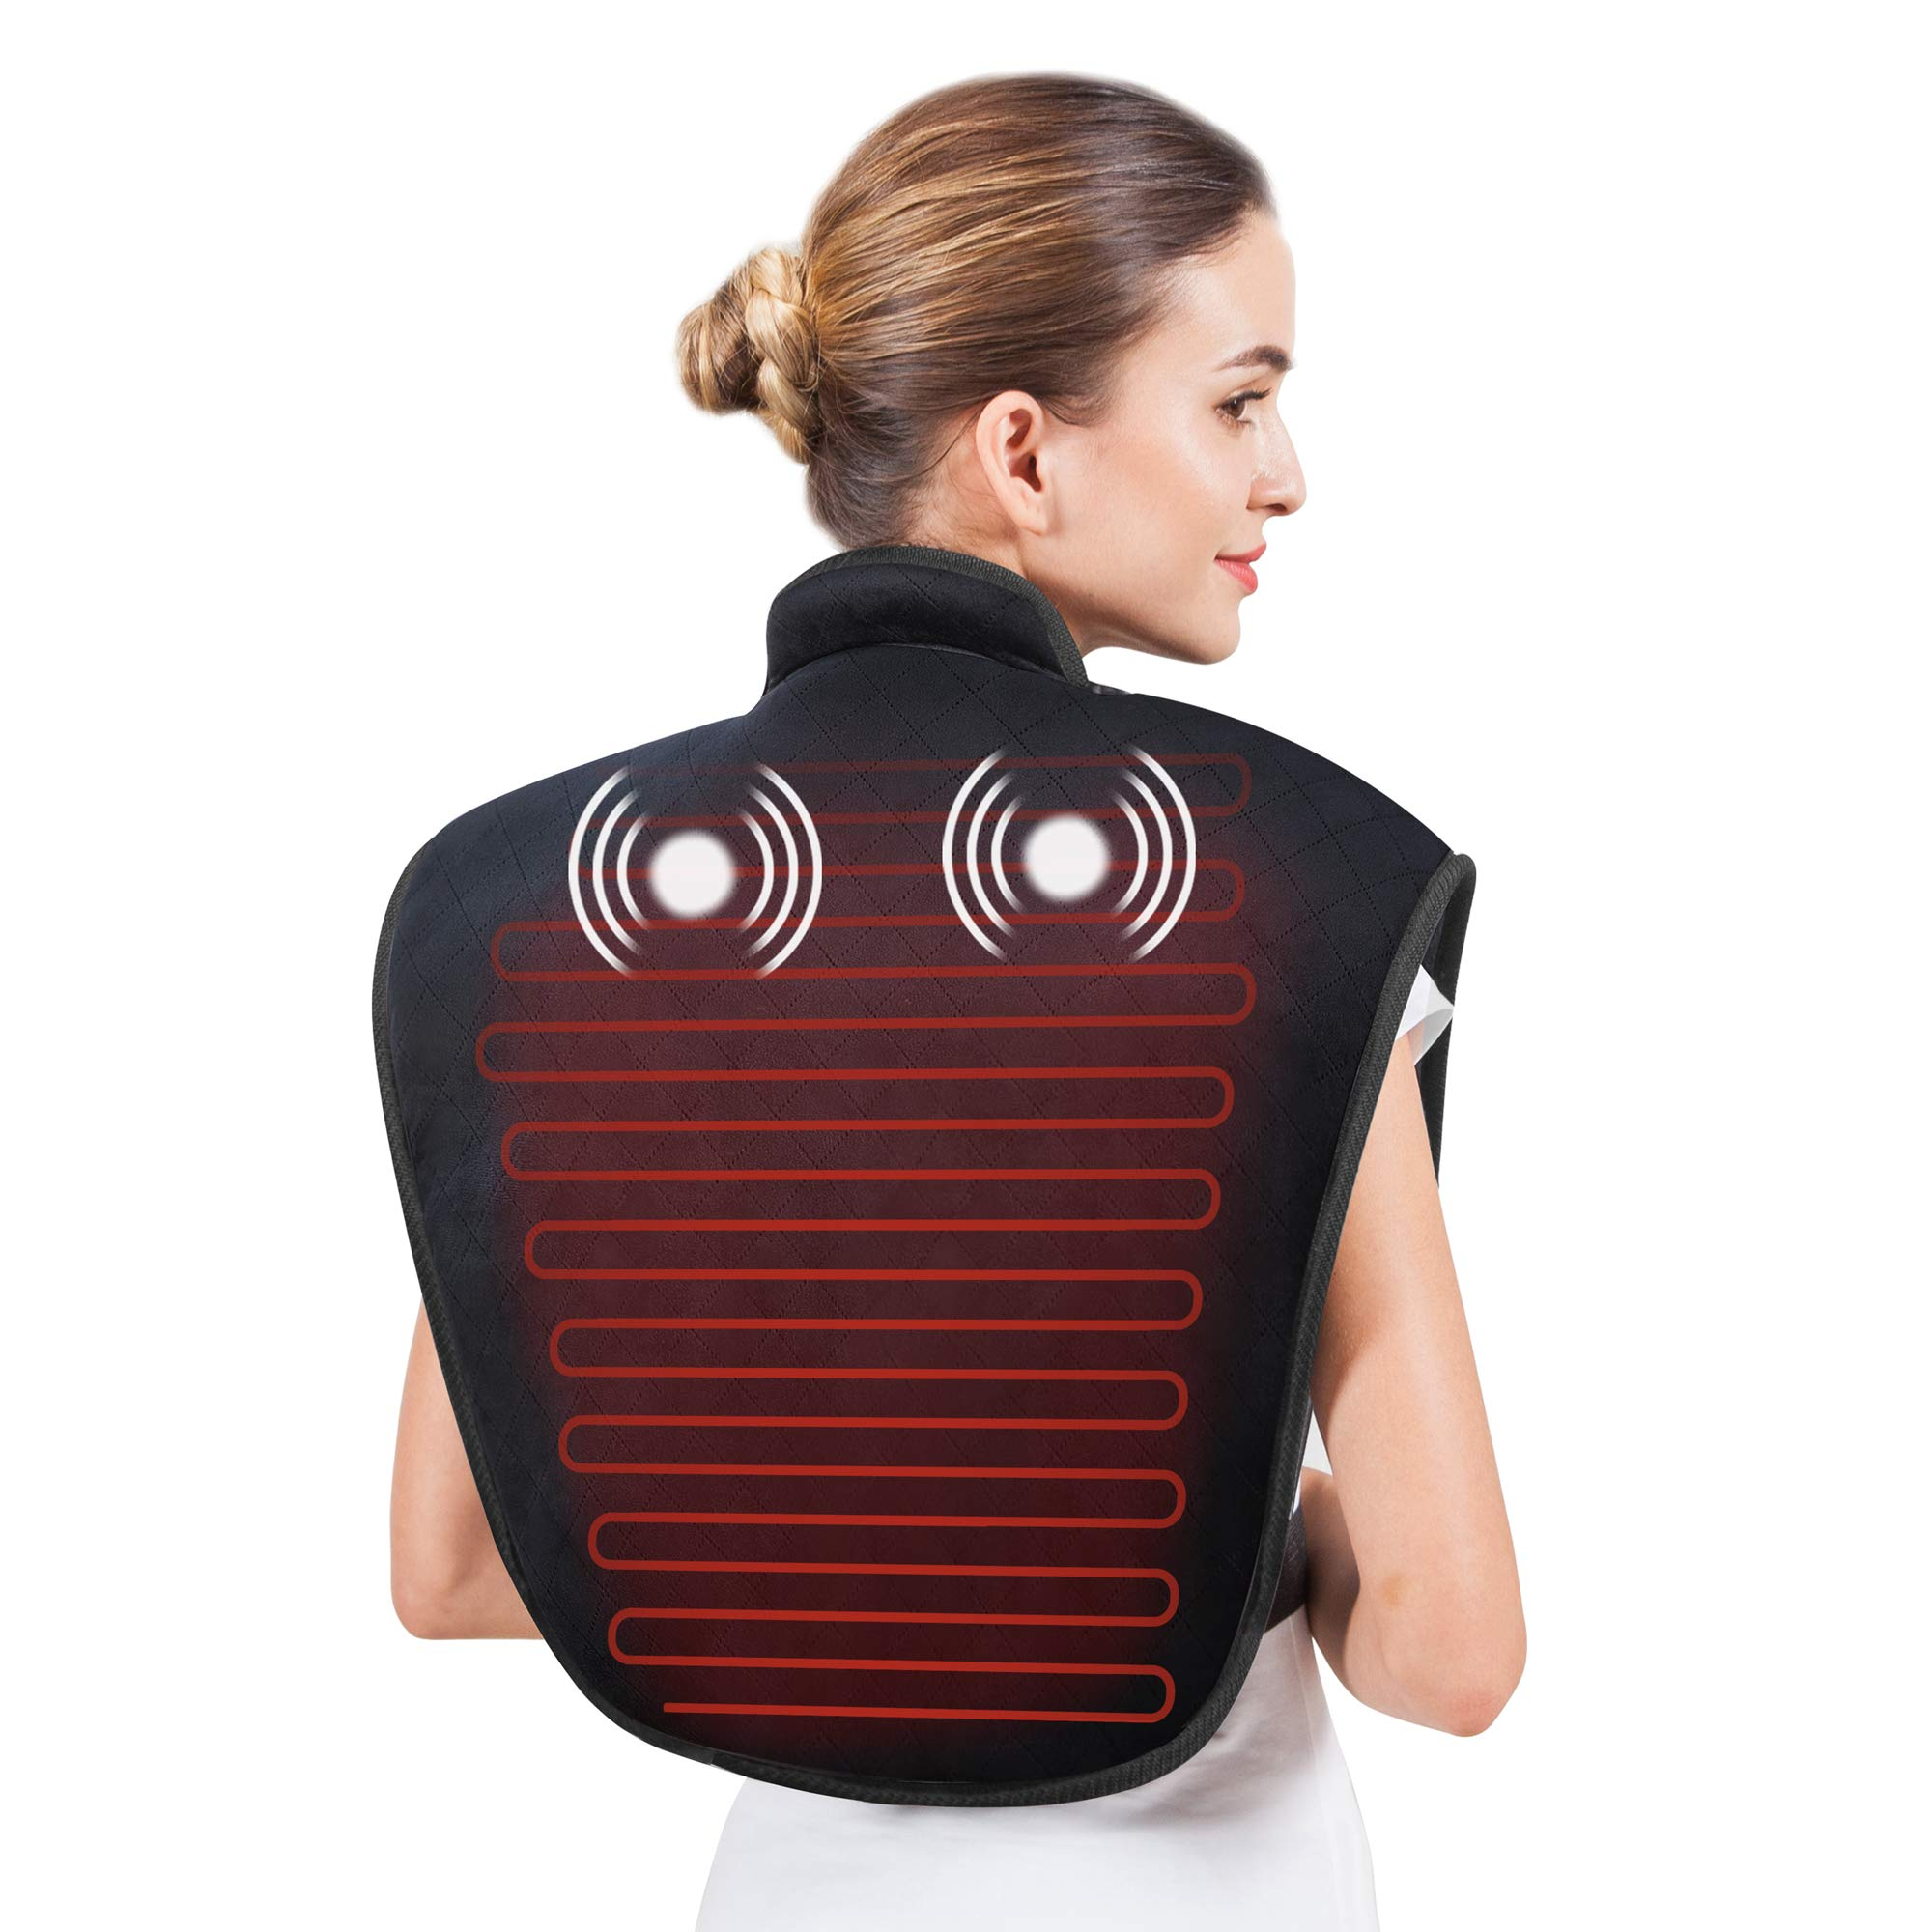 Heating Pad for Neck and Shoulders - Heat Wrap with Adjustable Heated Levels & Vibration Massage for Neck and Shoulder Back Pain Relief, Heating Pad with Auto Shut Off AL661 by Snailax